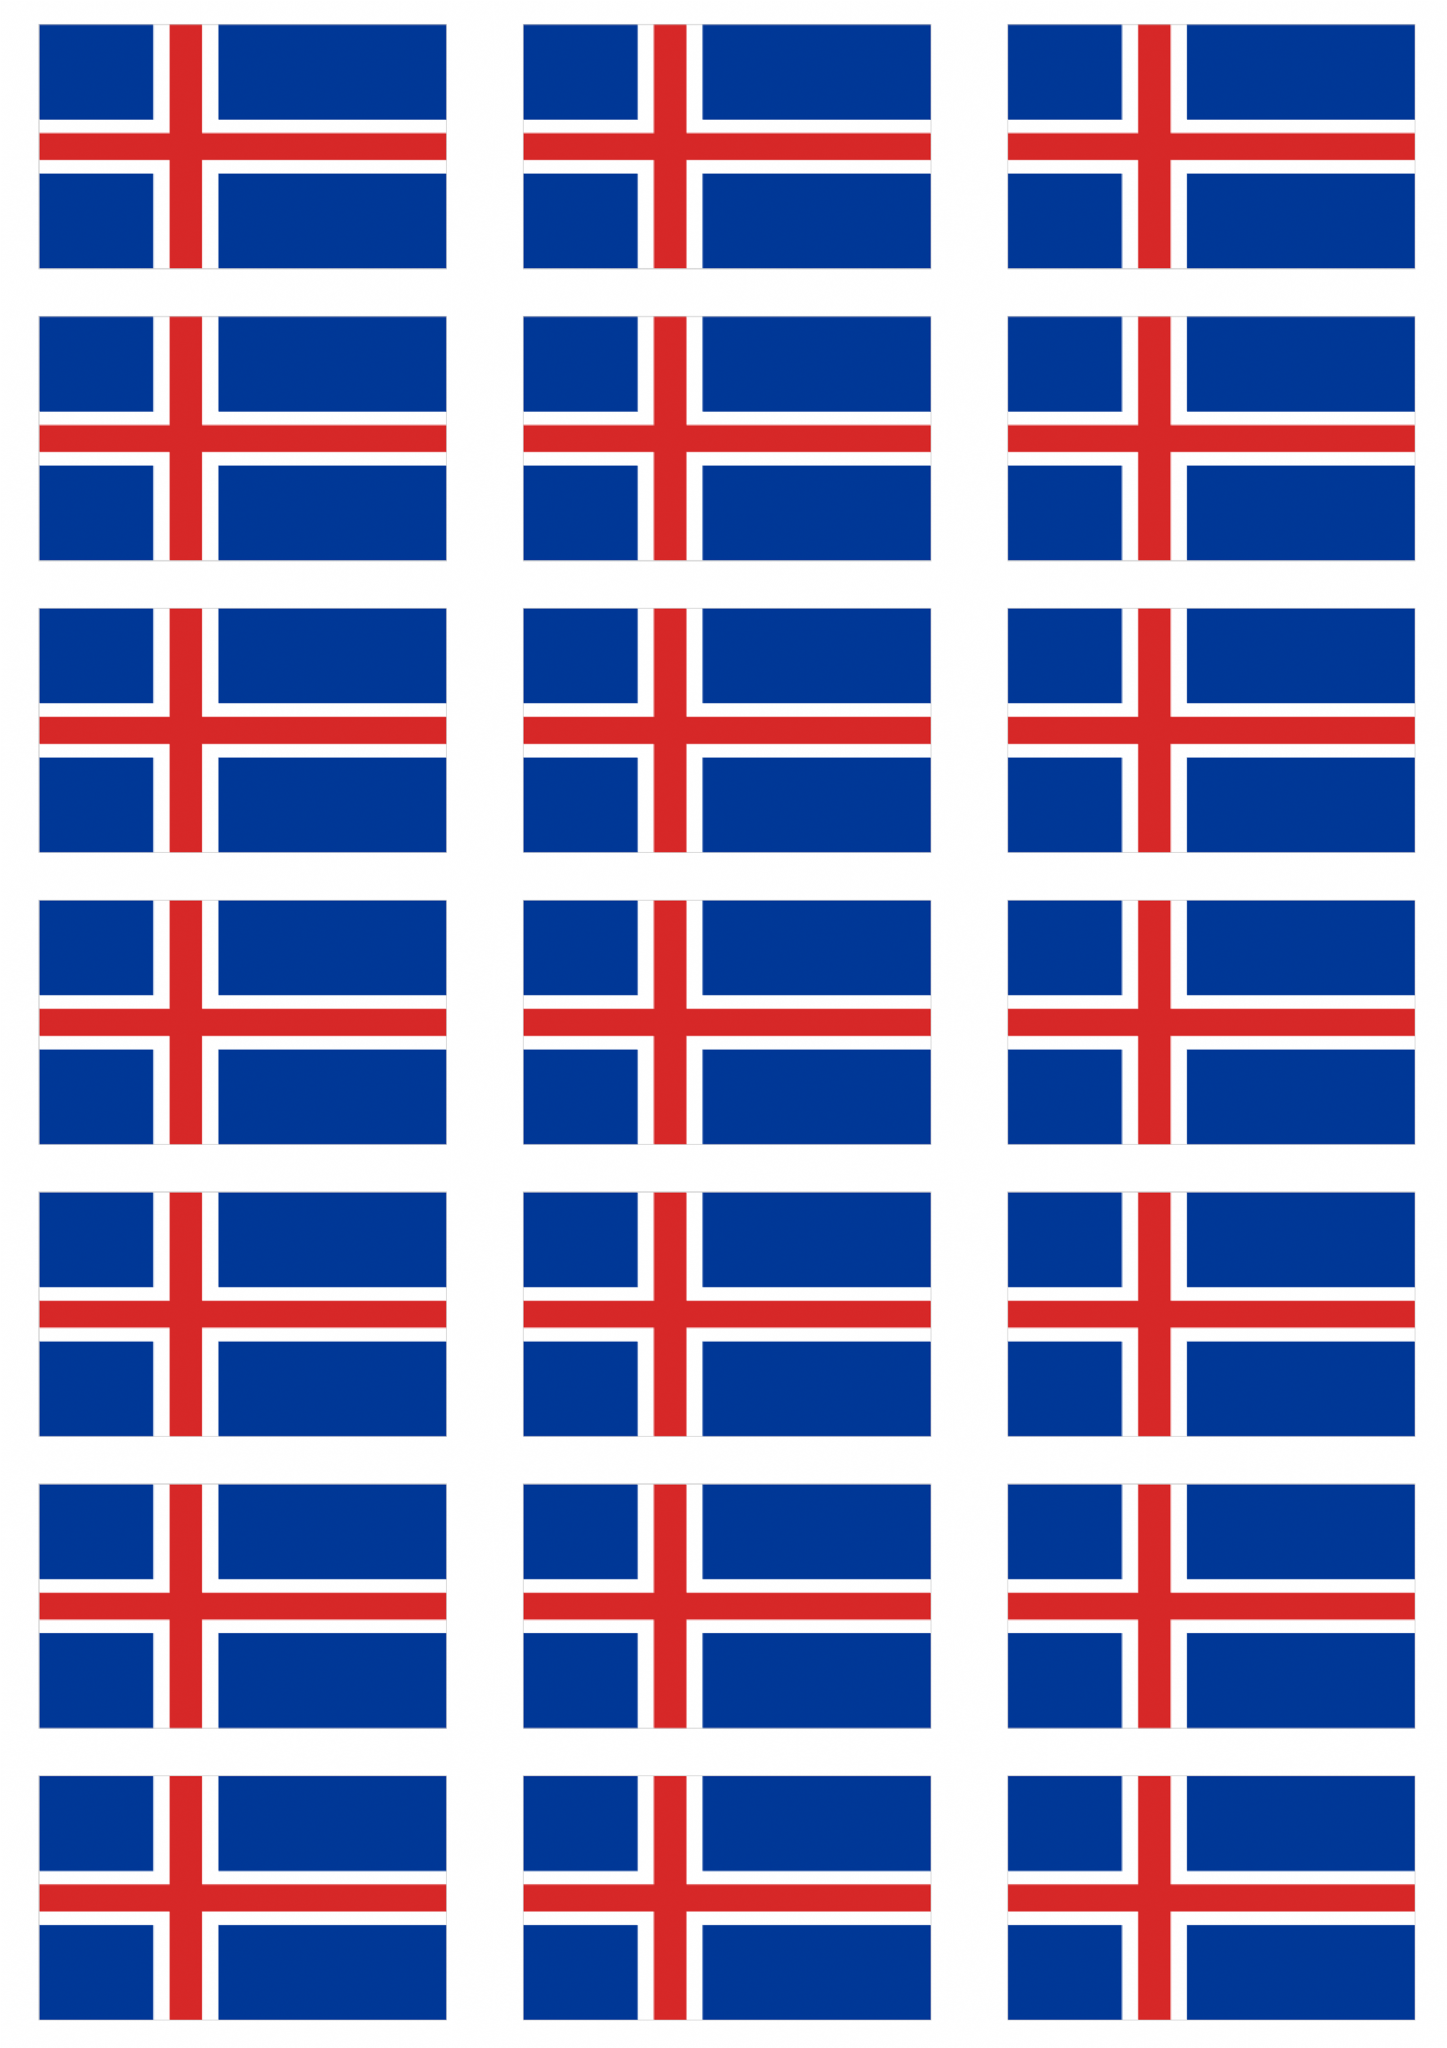 Iceland flag stickers 21 per sheet 106194 p png